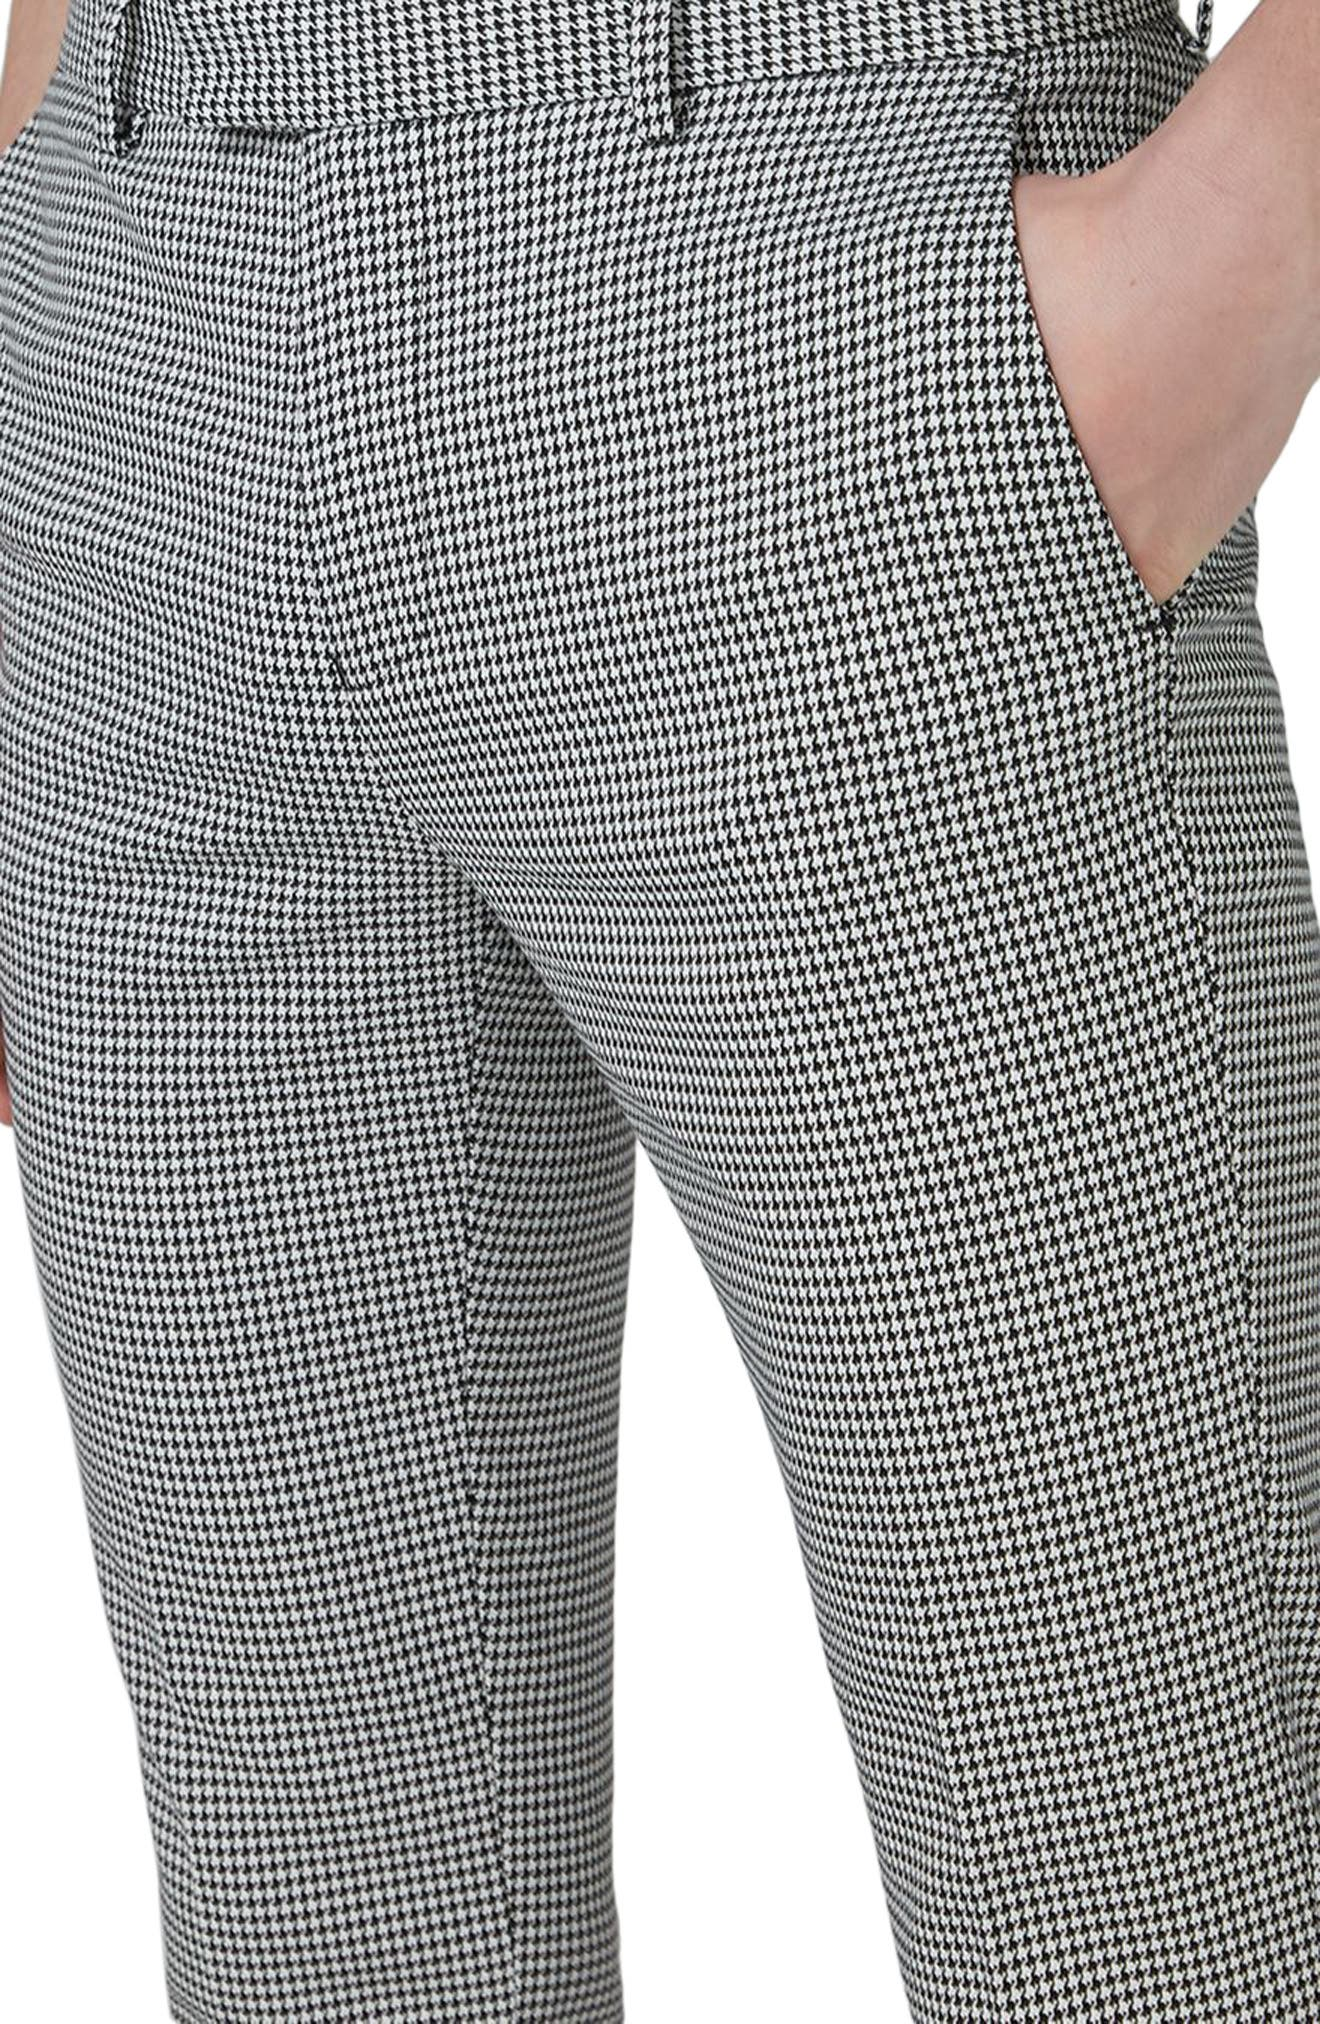 Ultra Skinny Fit Houndstooth Suit Trousers,                             Alternate thumbnail 4, color,                             Black Multi